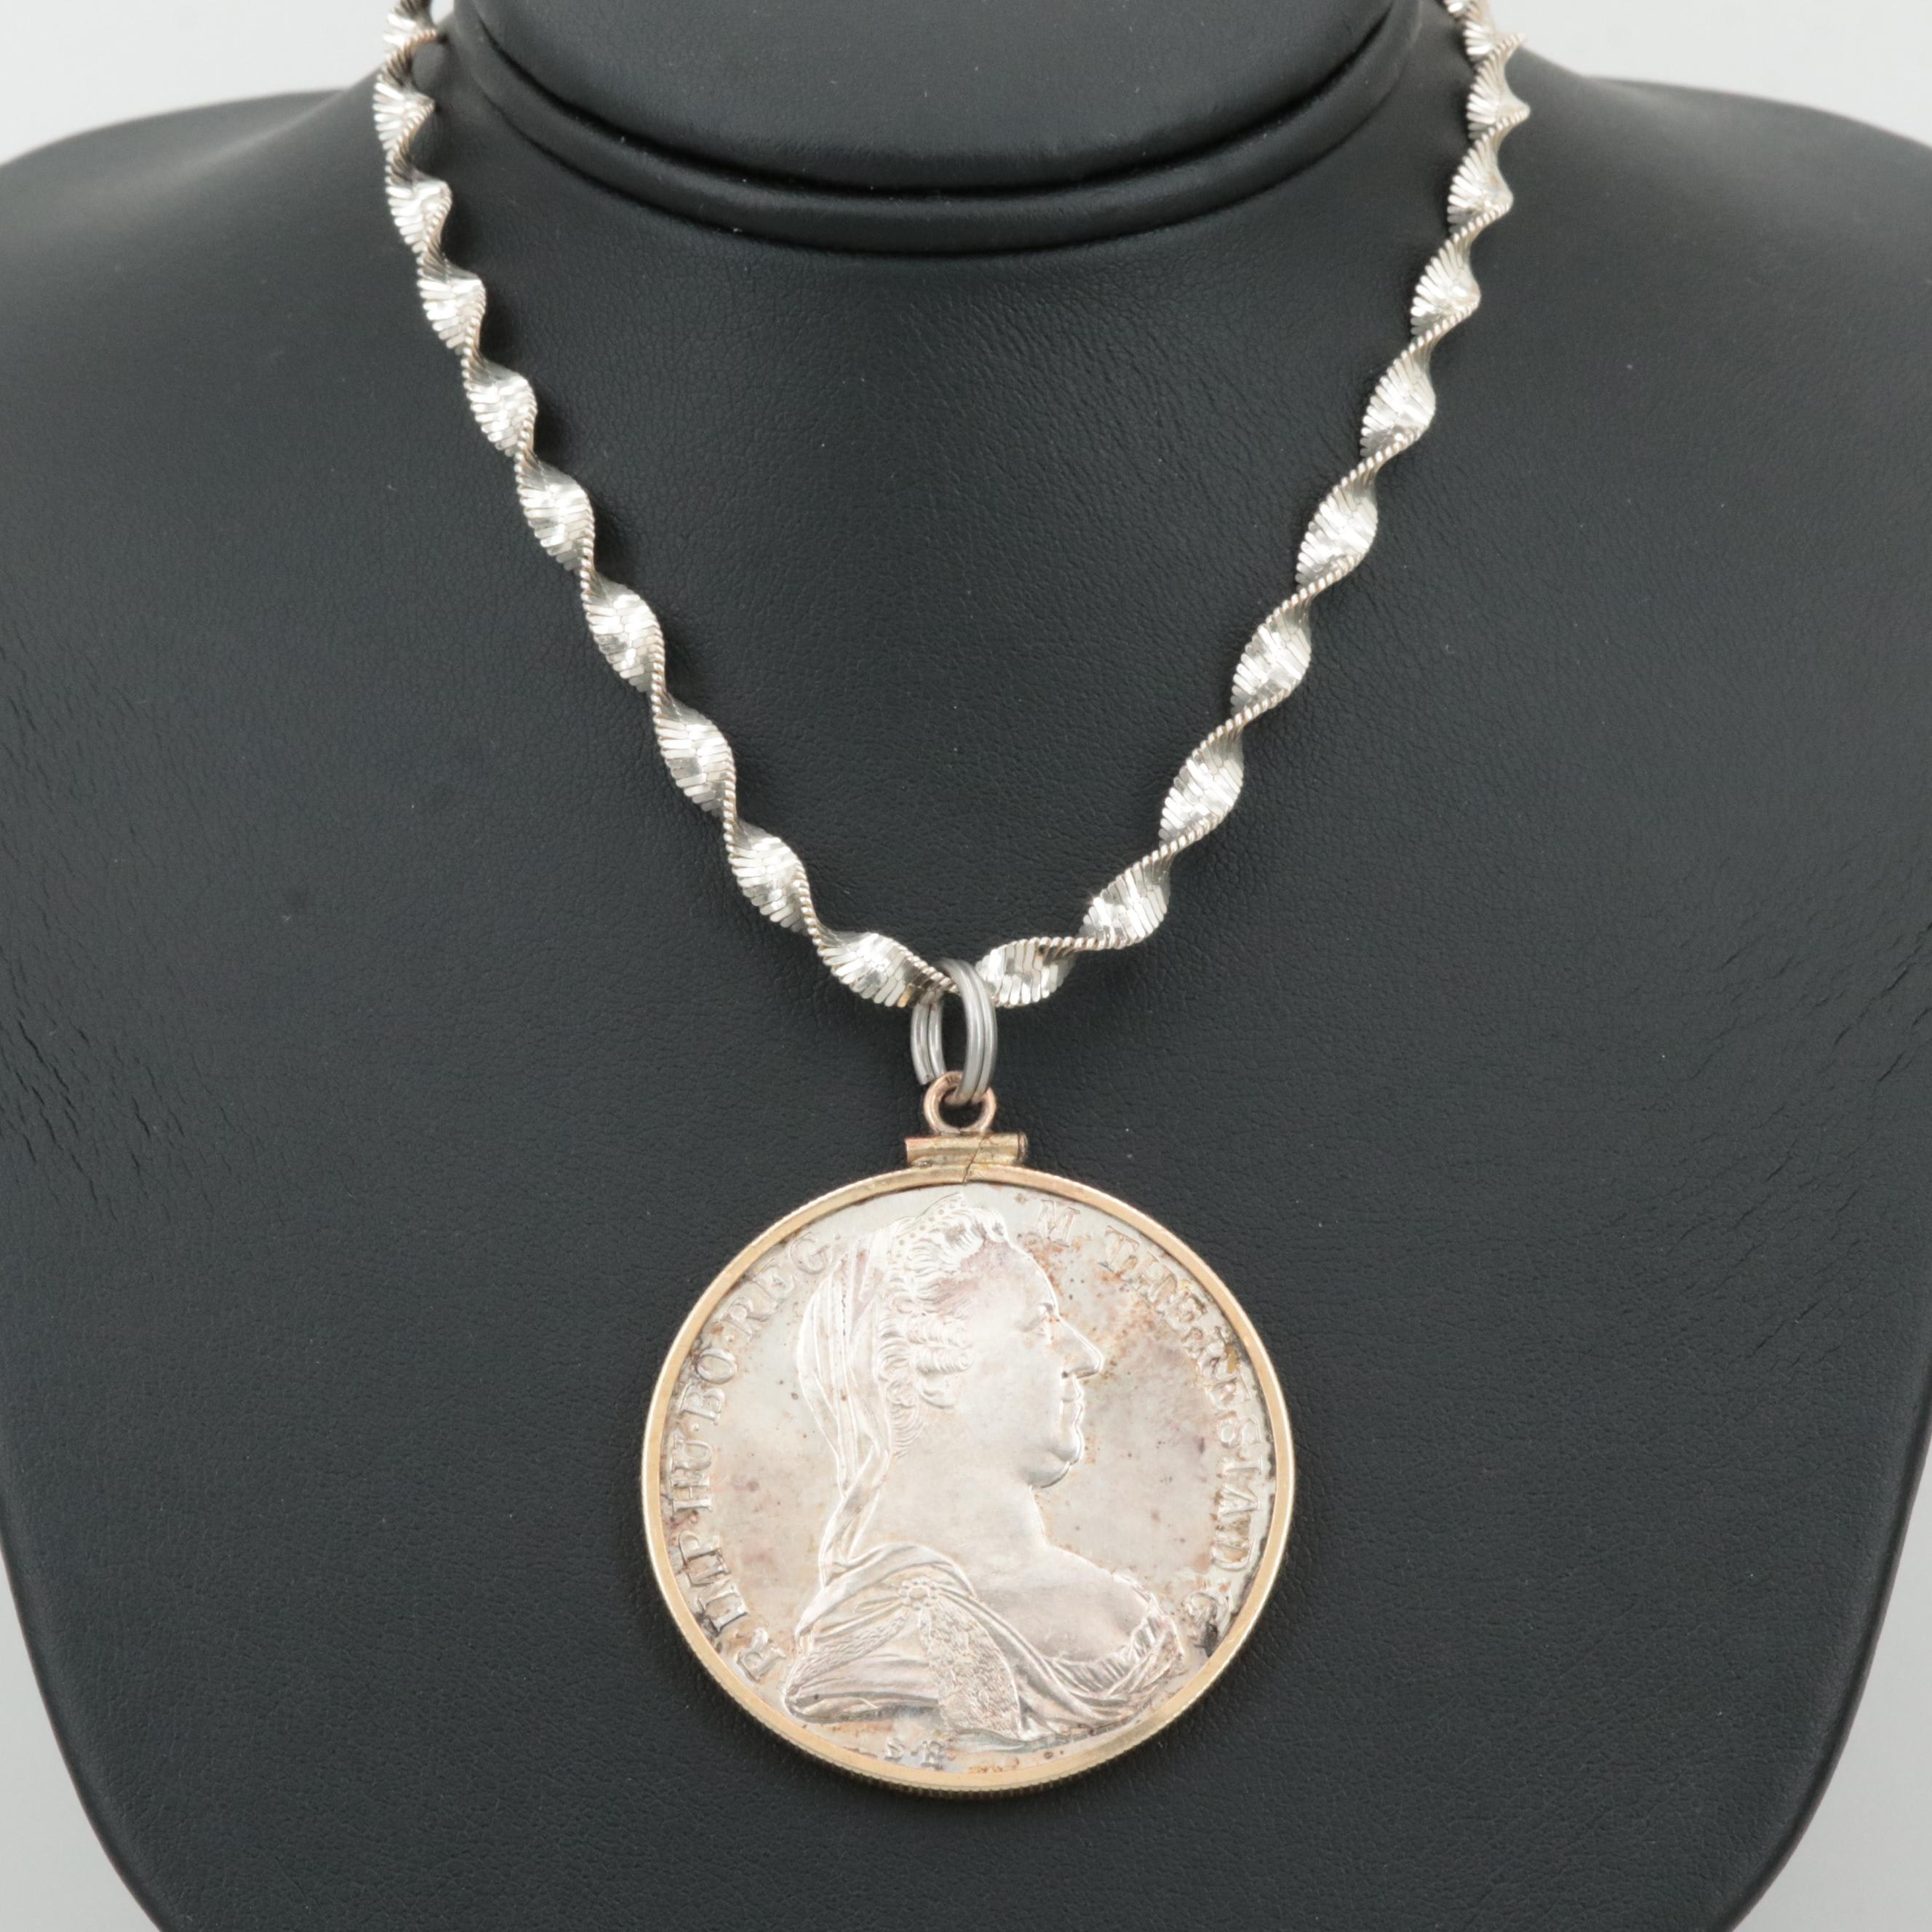 Sterling Silver Necklace with a Proof Restrike 1780 Thaler Coin Bezel